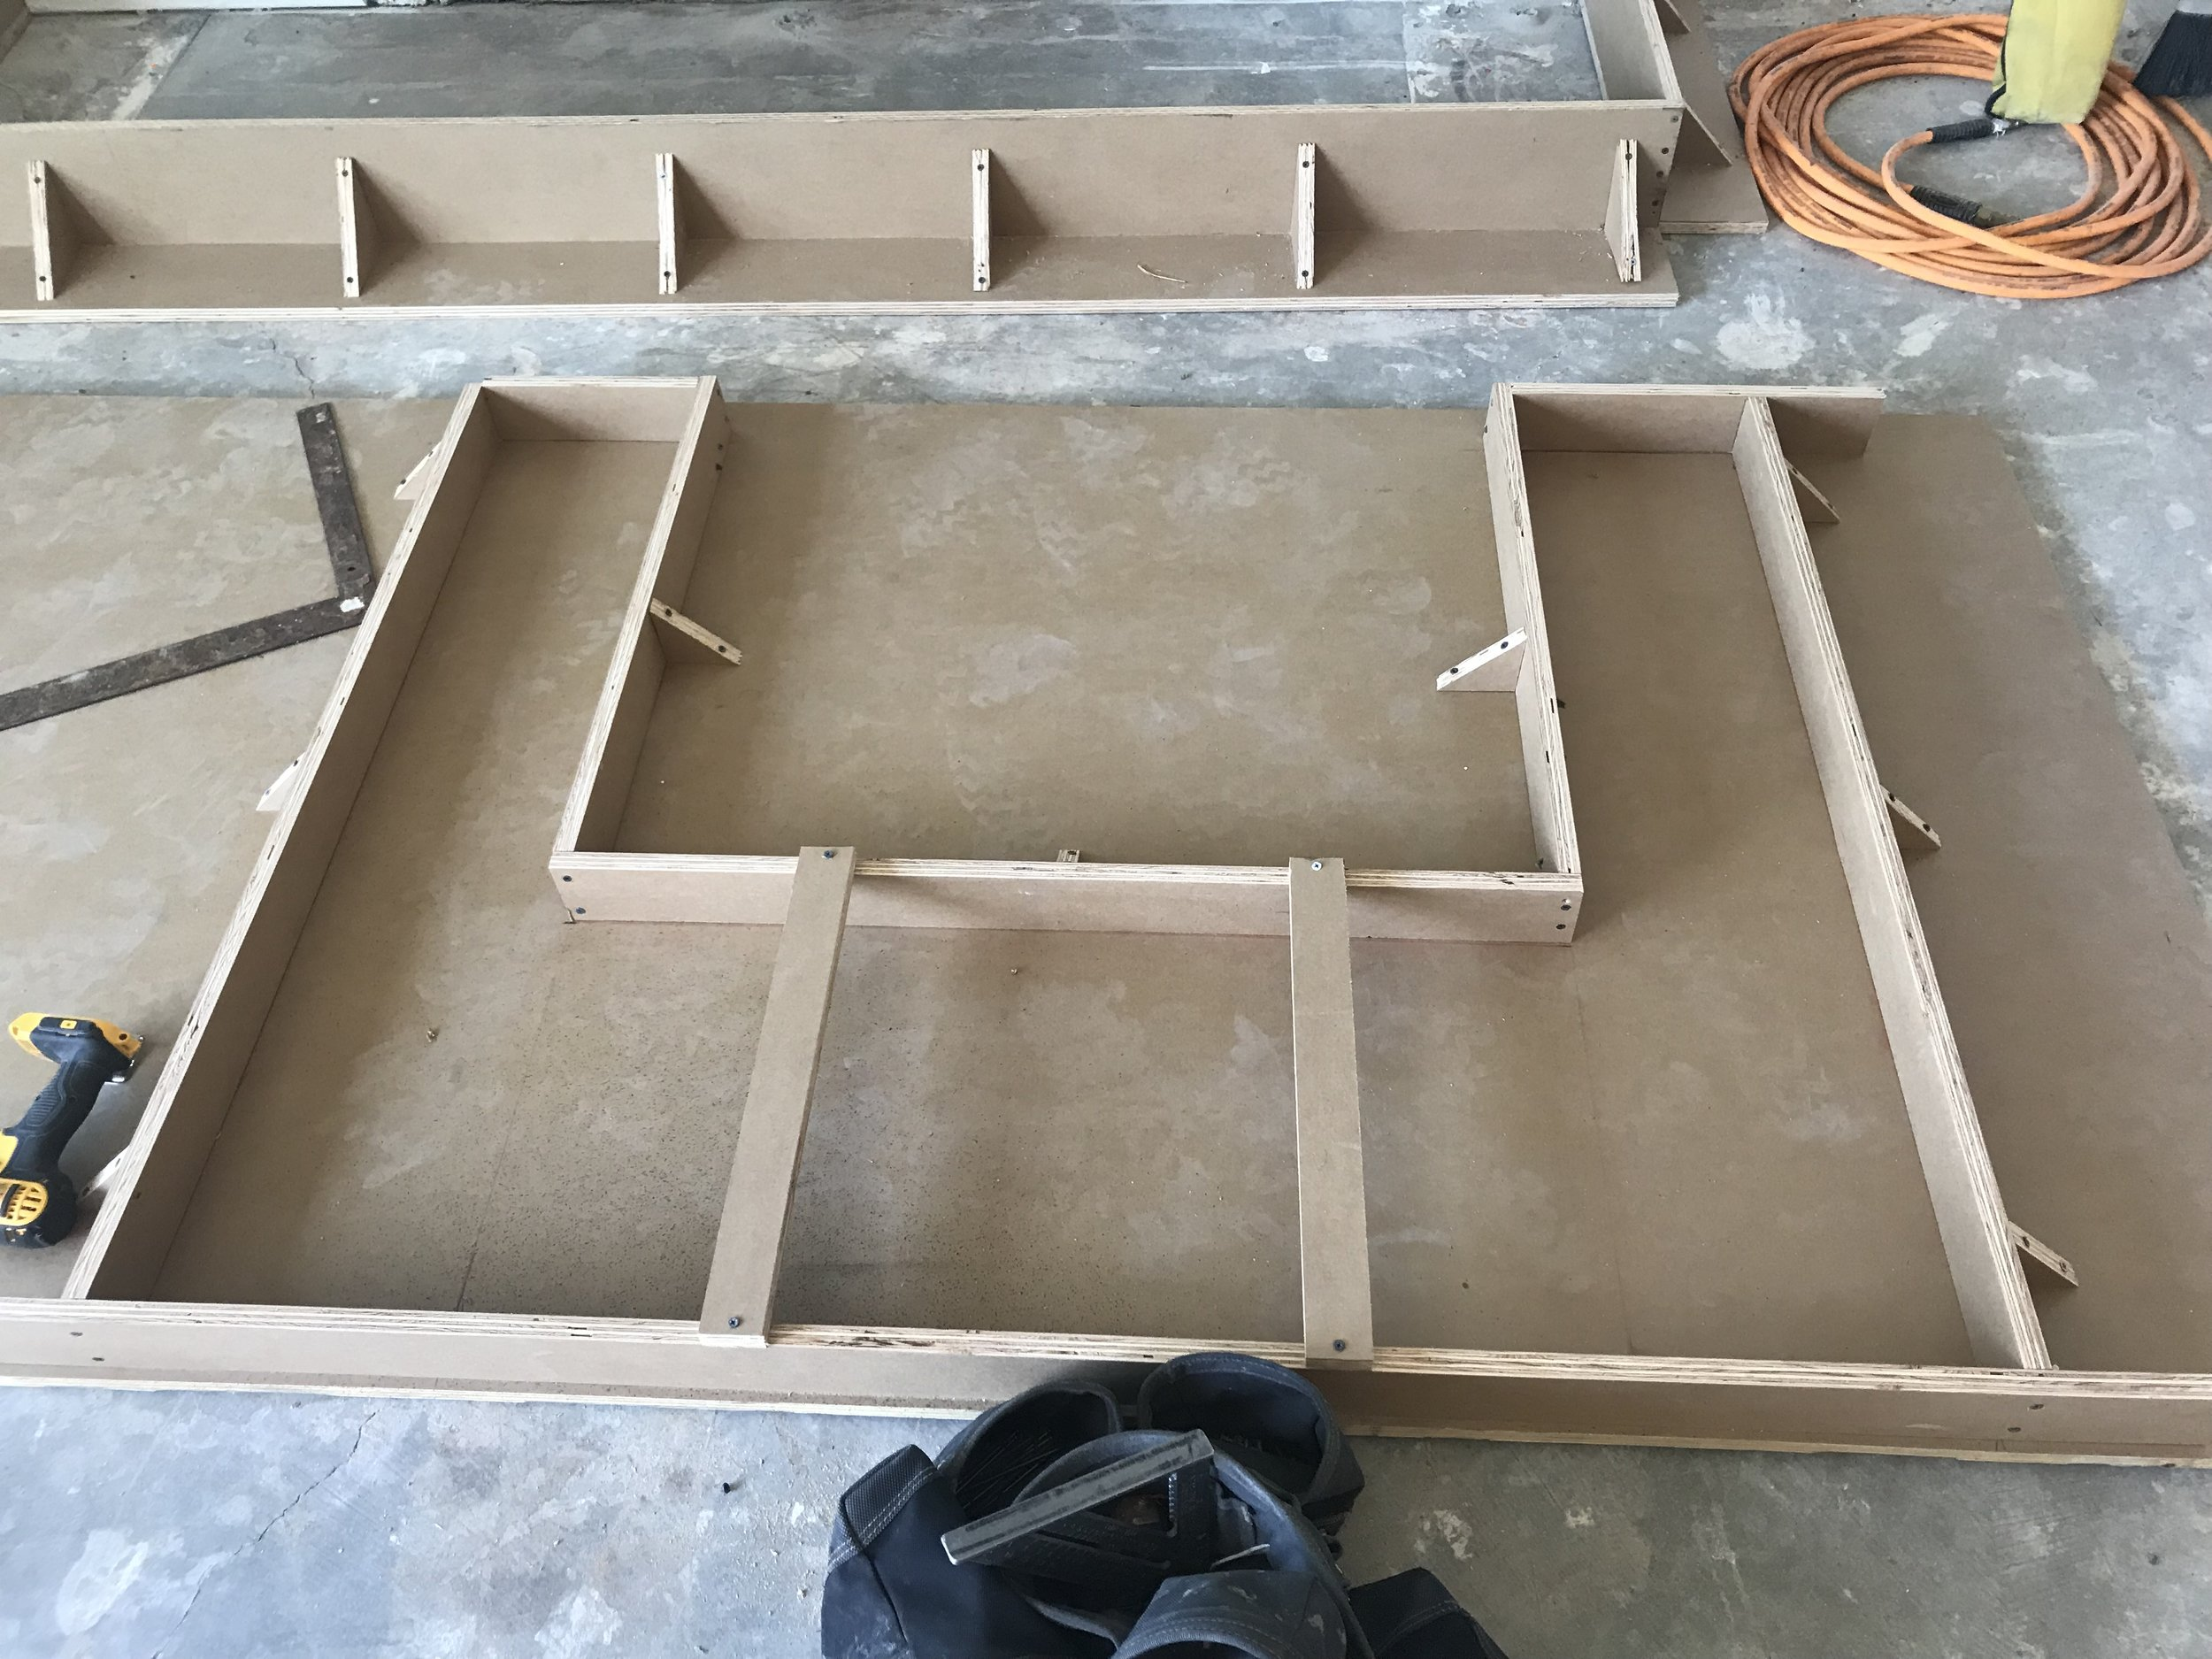 A mold was created to size to aid the concrete in taking form